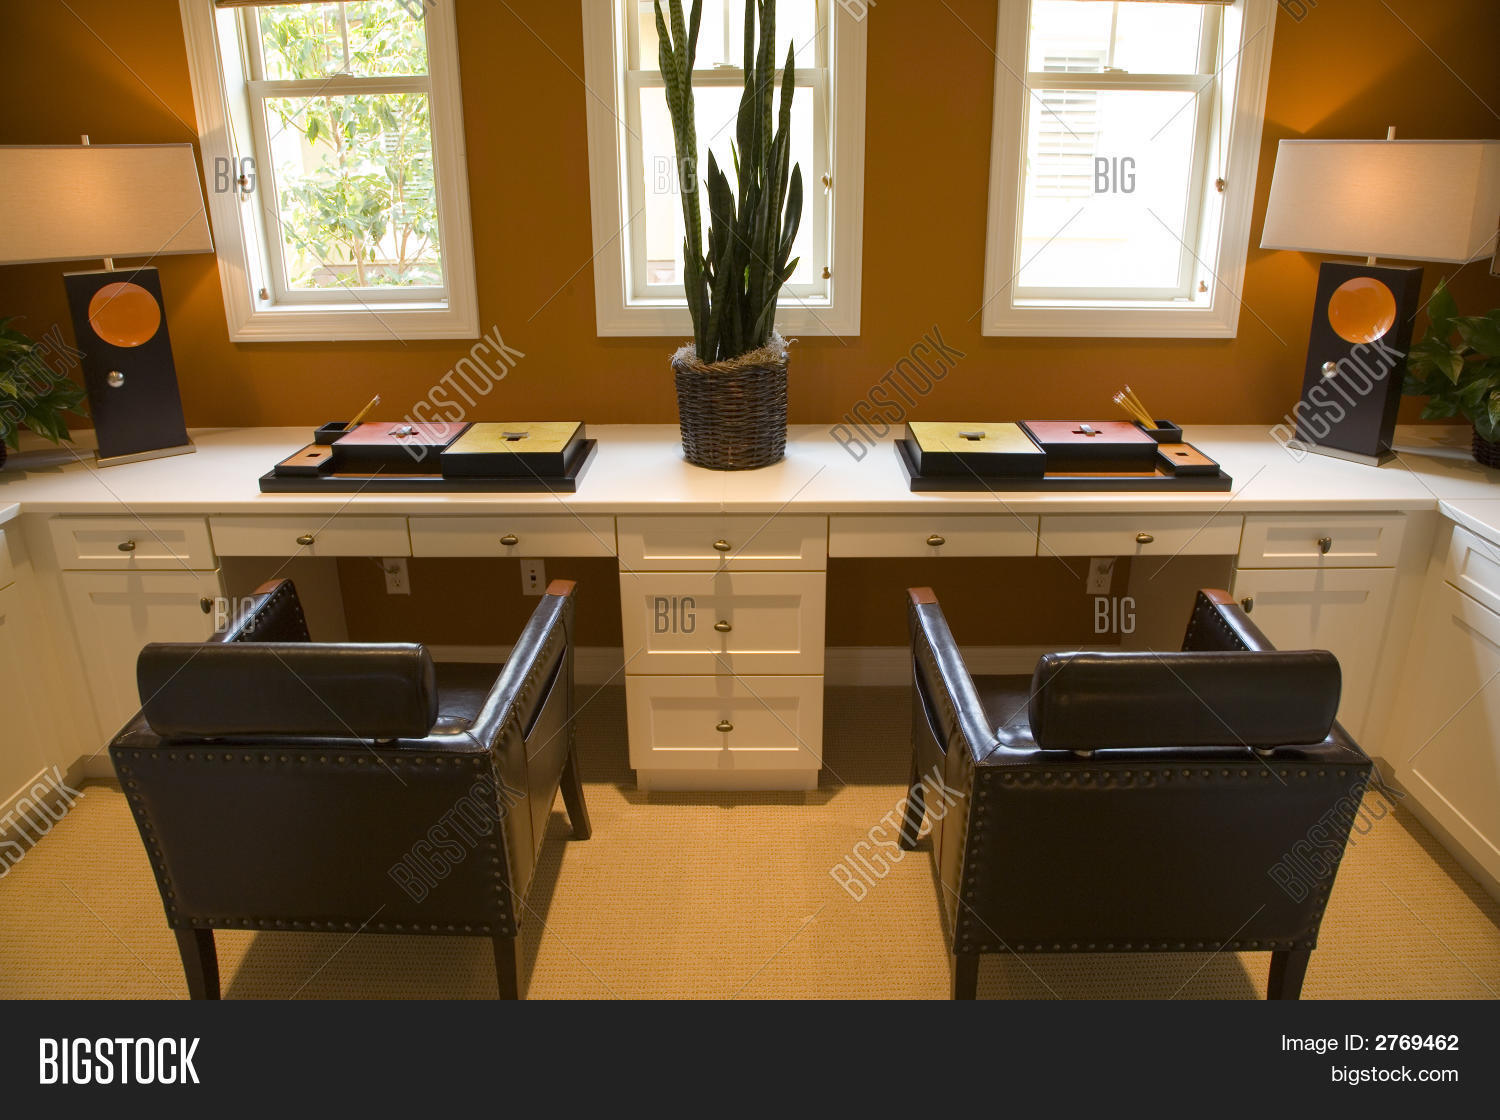 luxury home office for two. stock photo & stock images | bigstock